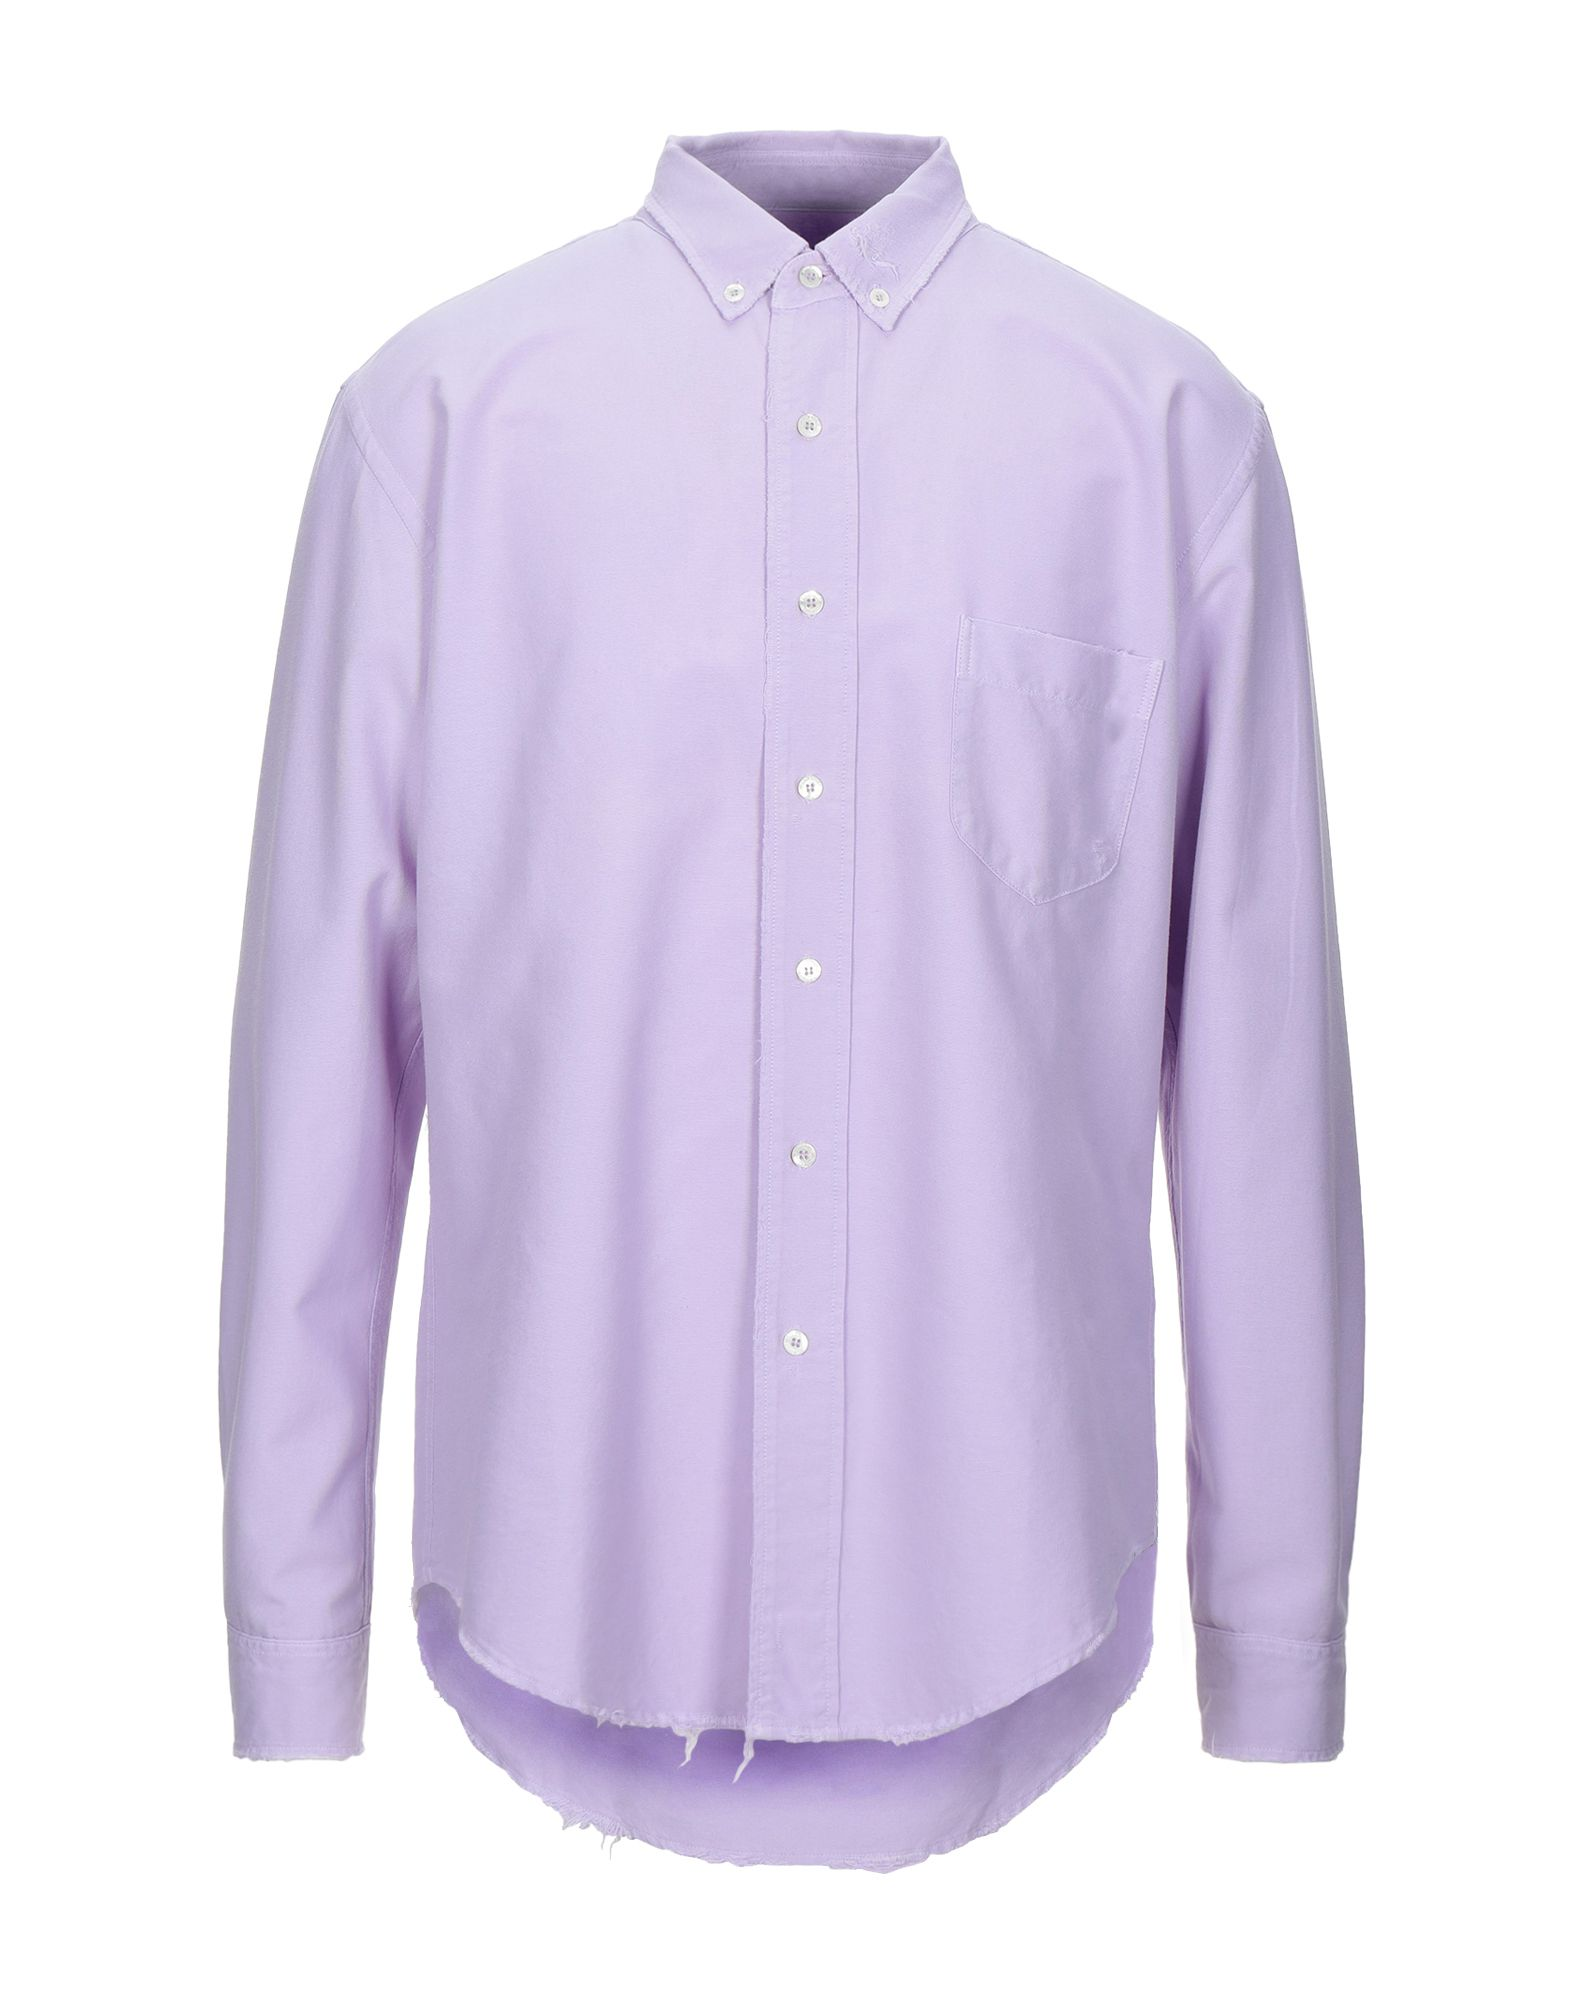 PALM ANGELS Shirts. plain weave, logo, basic solid color, front closure, button closing, long sleeves, buttoned cuffs, button-down collar, single chest pocket. 100% Cotton